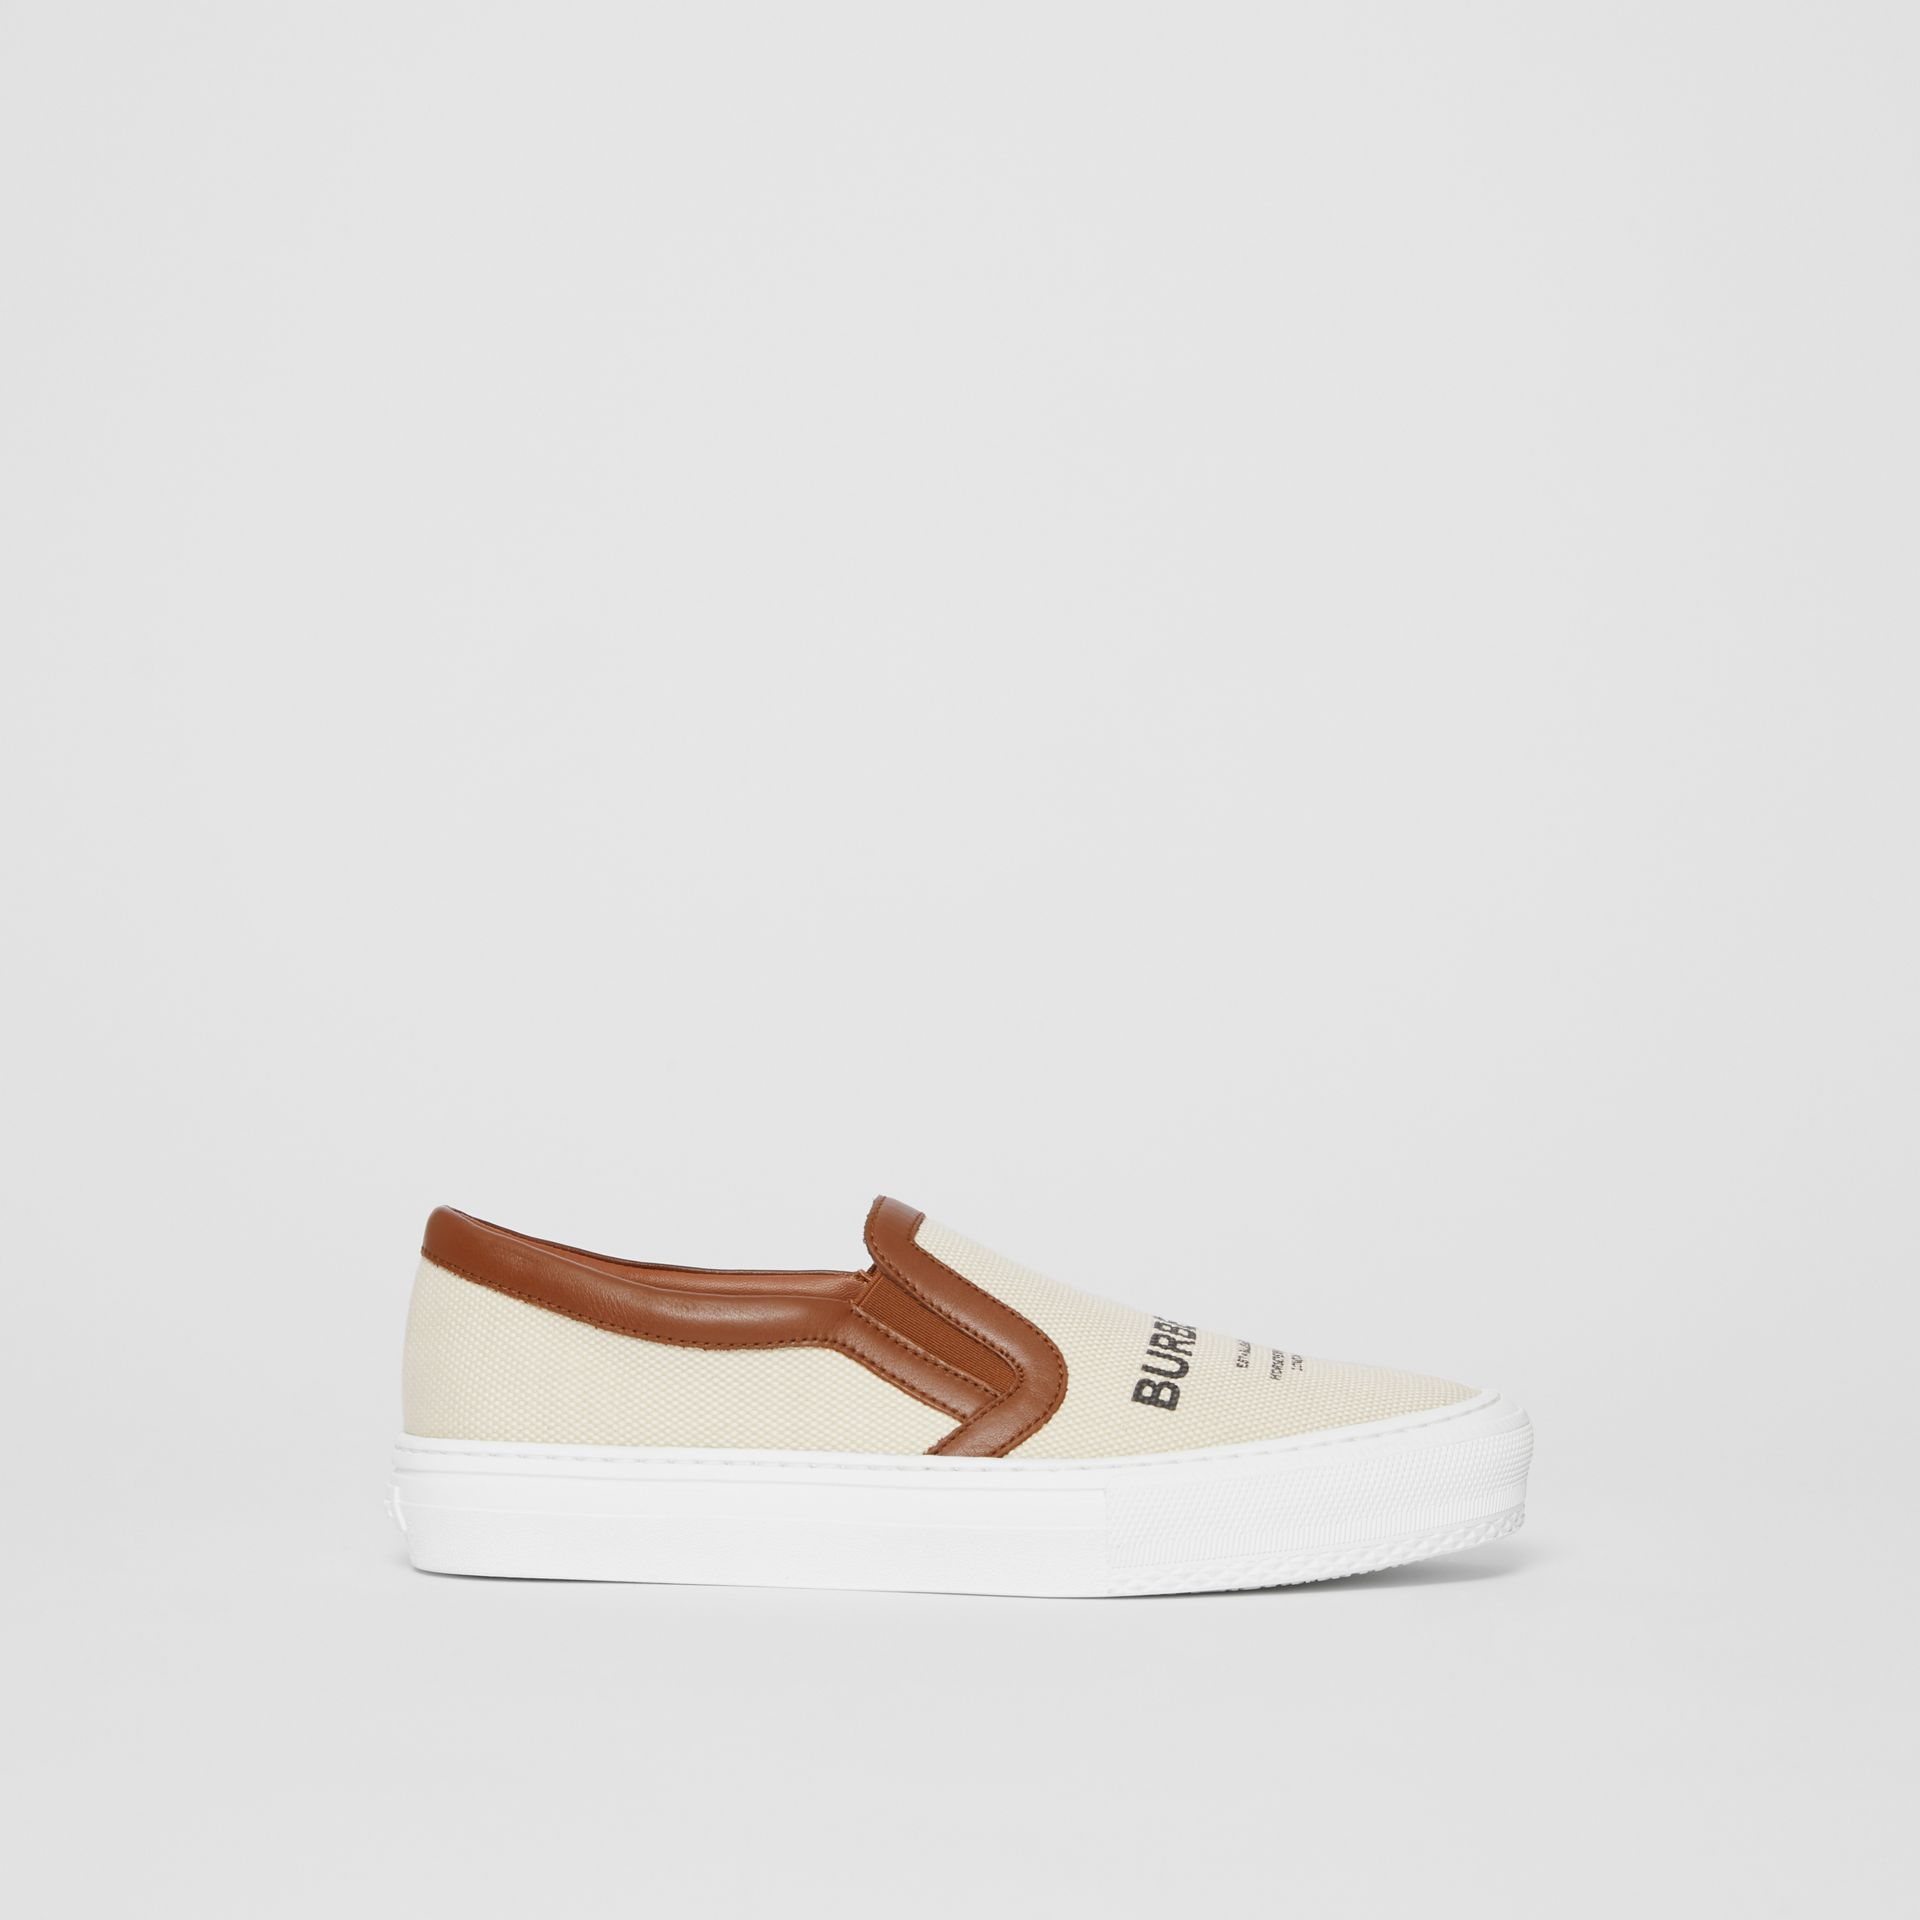 Sneakers sans lacets en coton et cuir Horseferry (Brun Malt) - Femme | Burberry - photo de la galerie 4